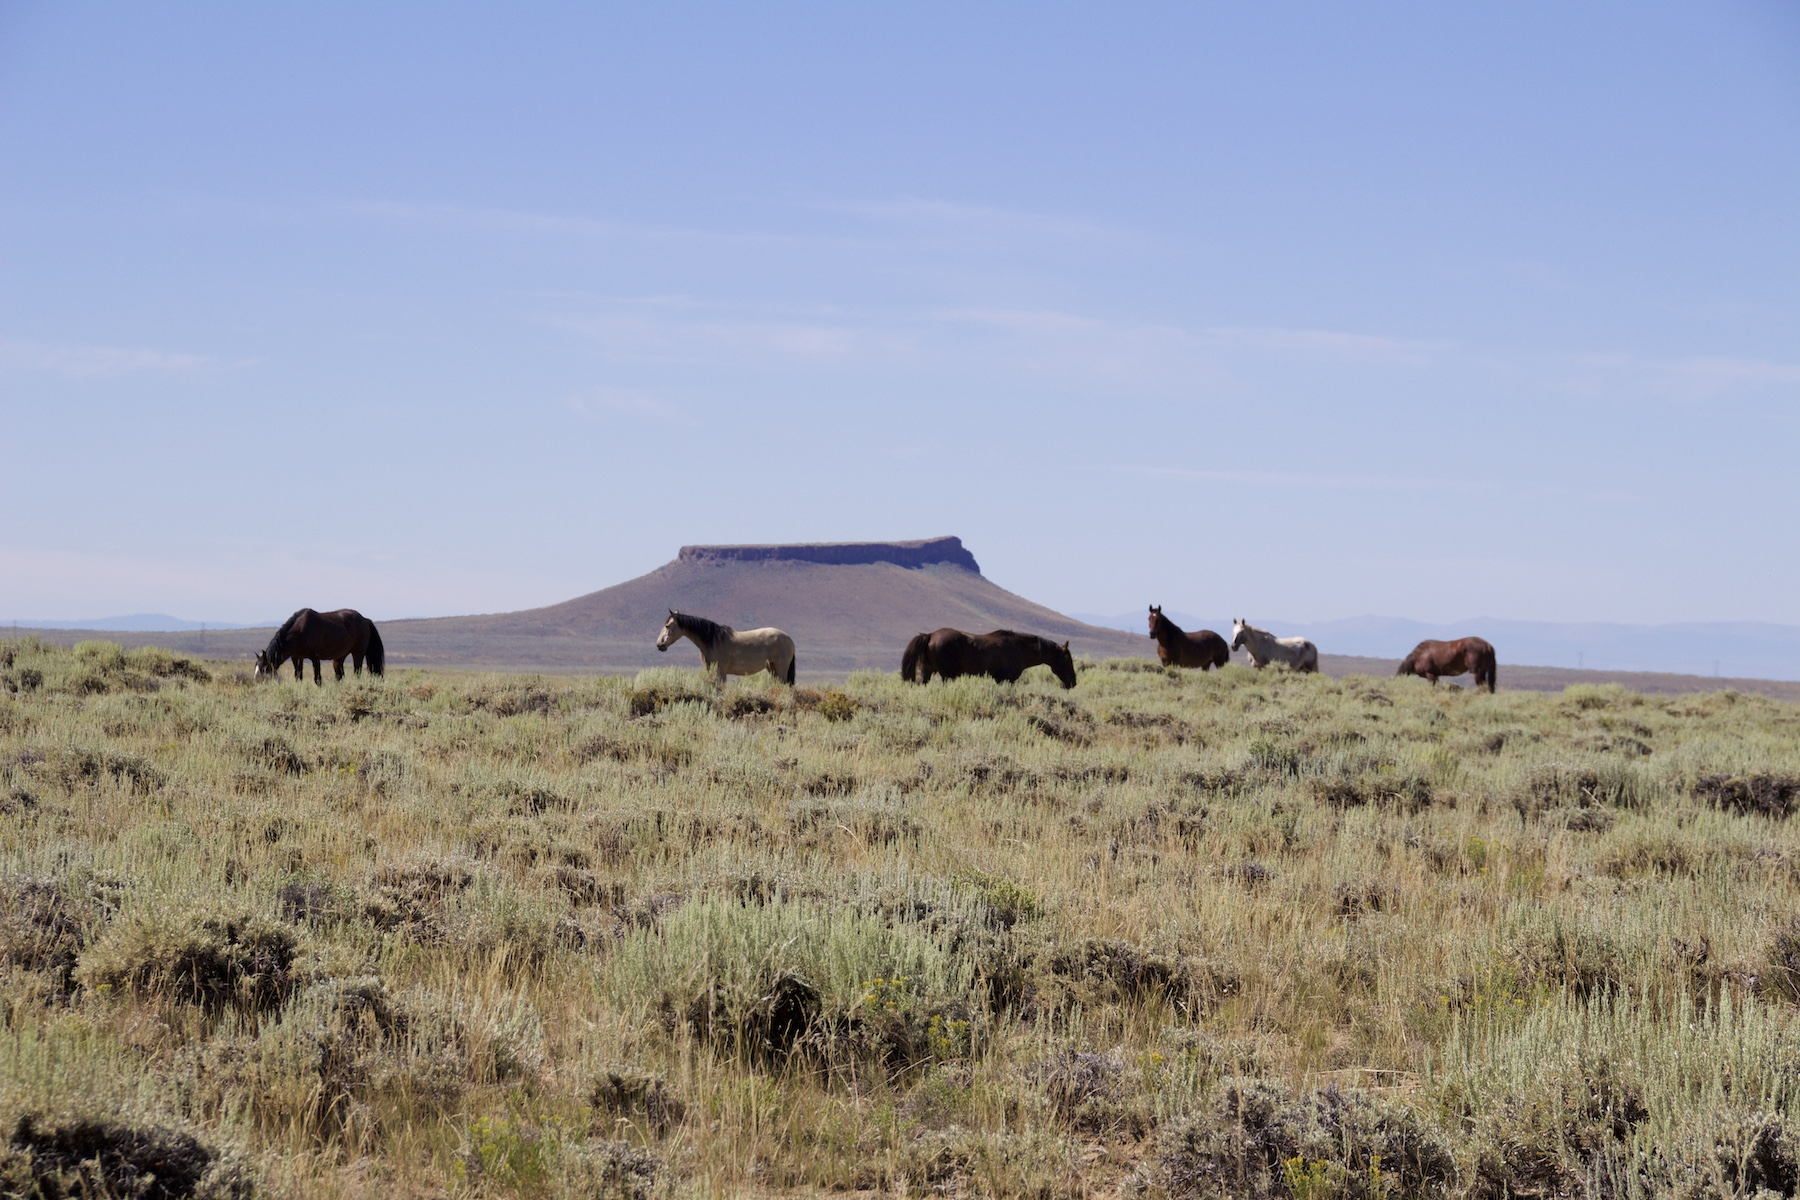 The Wild Horses of Green River, Wyoming